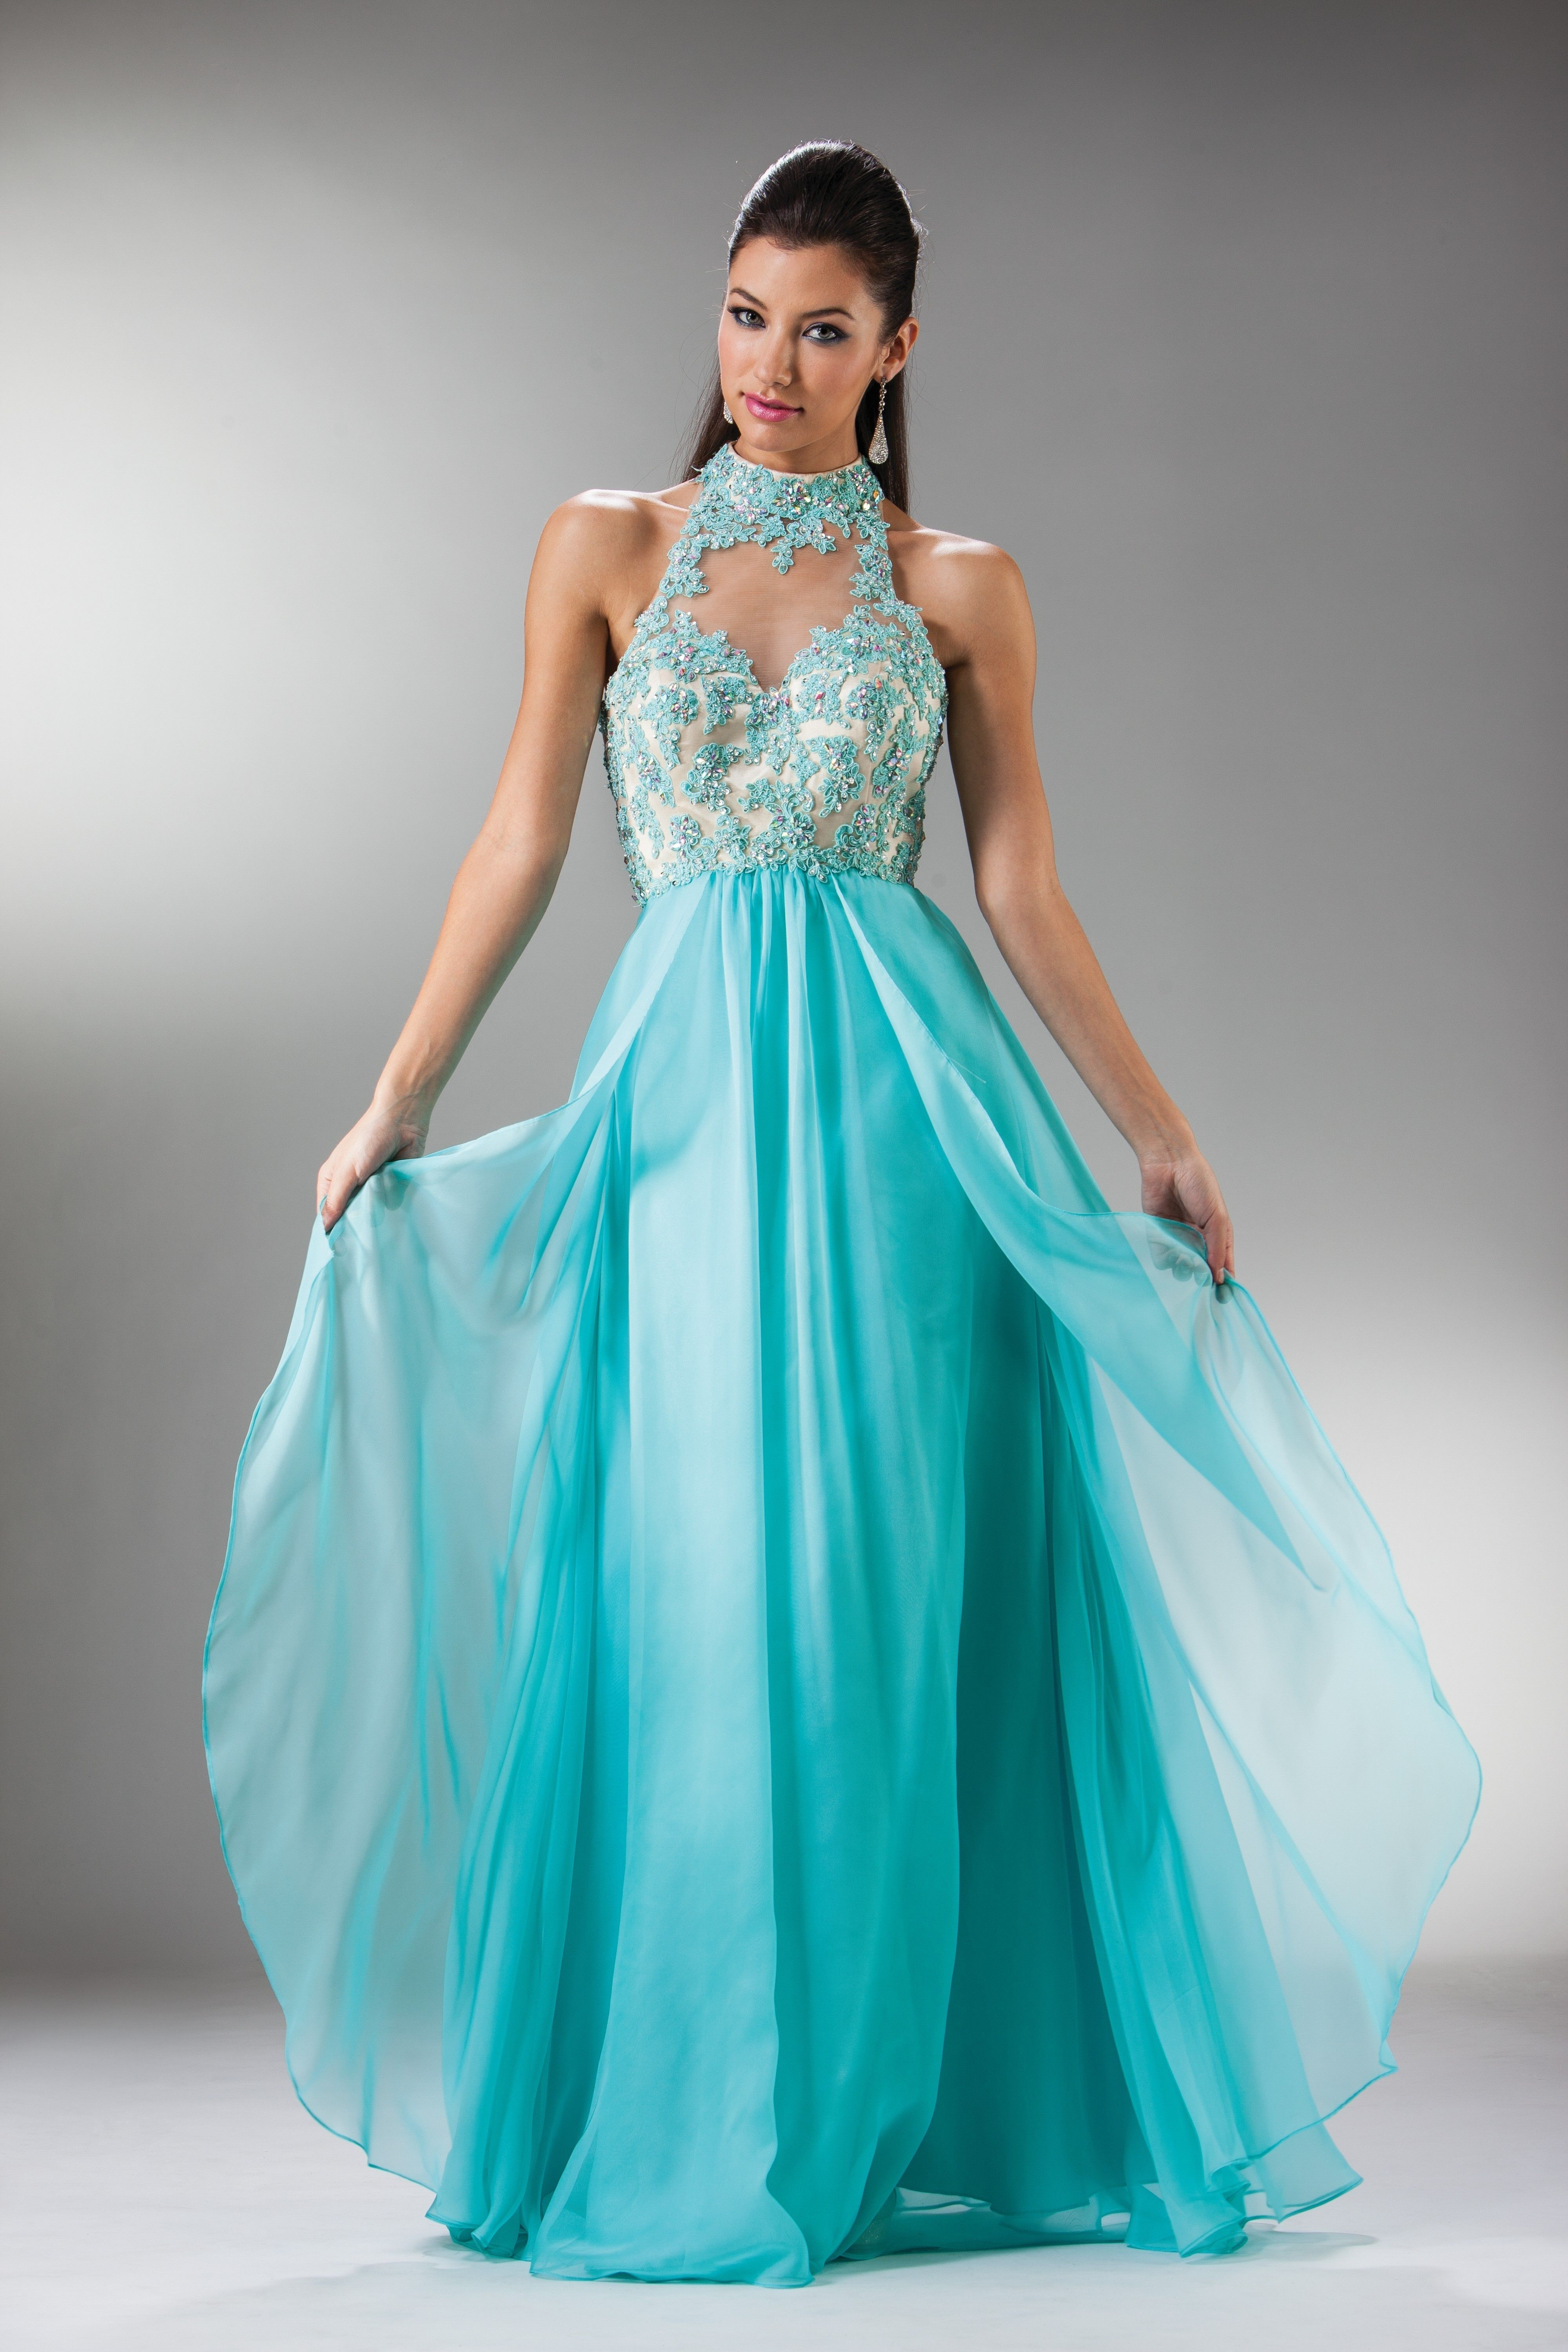 Long Prom Dresses For Short Ladies And Overview 2017 - Dresses Ask